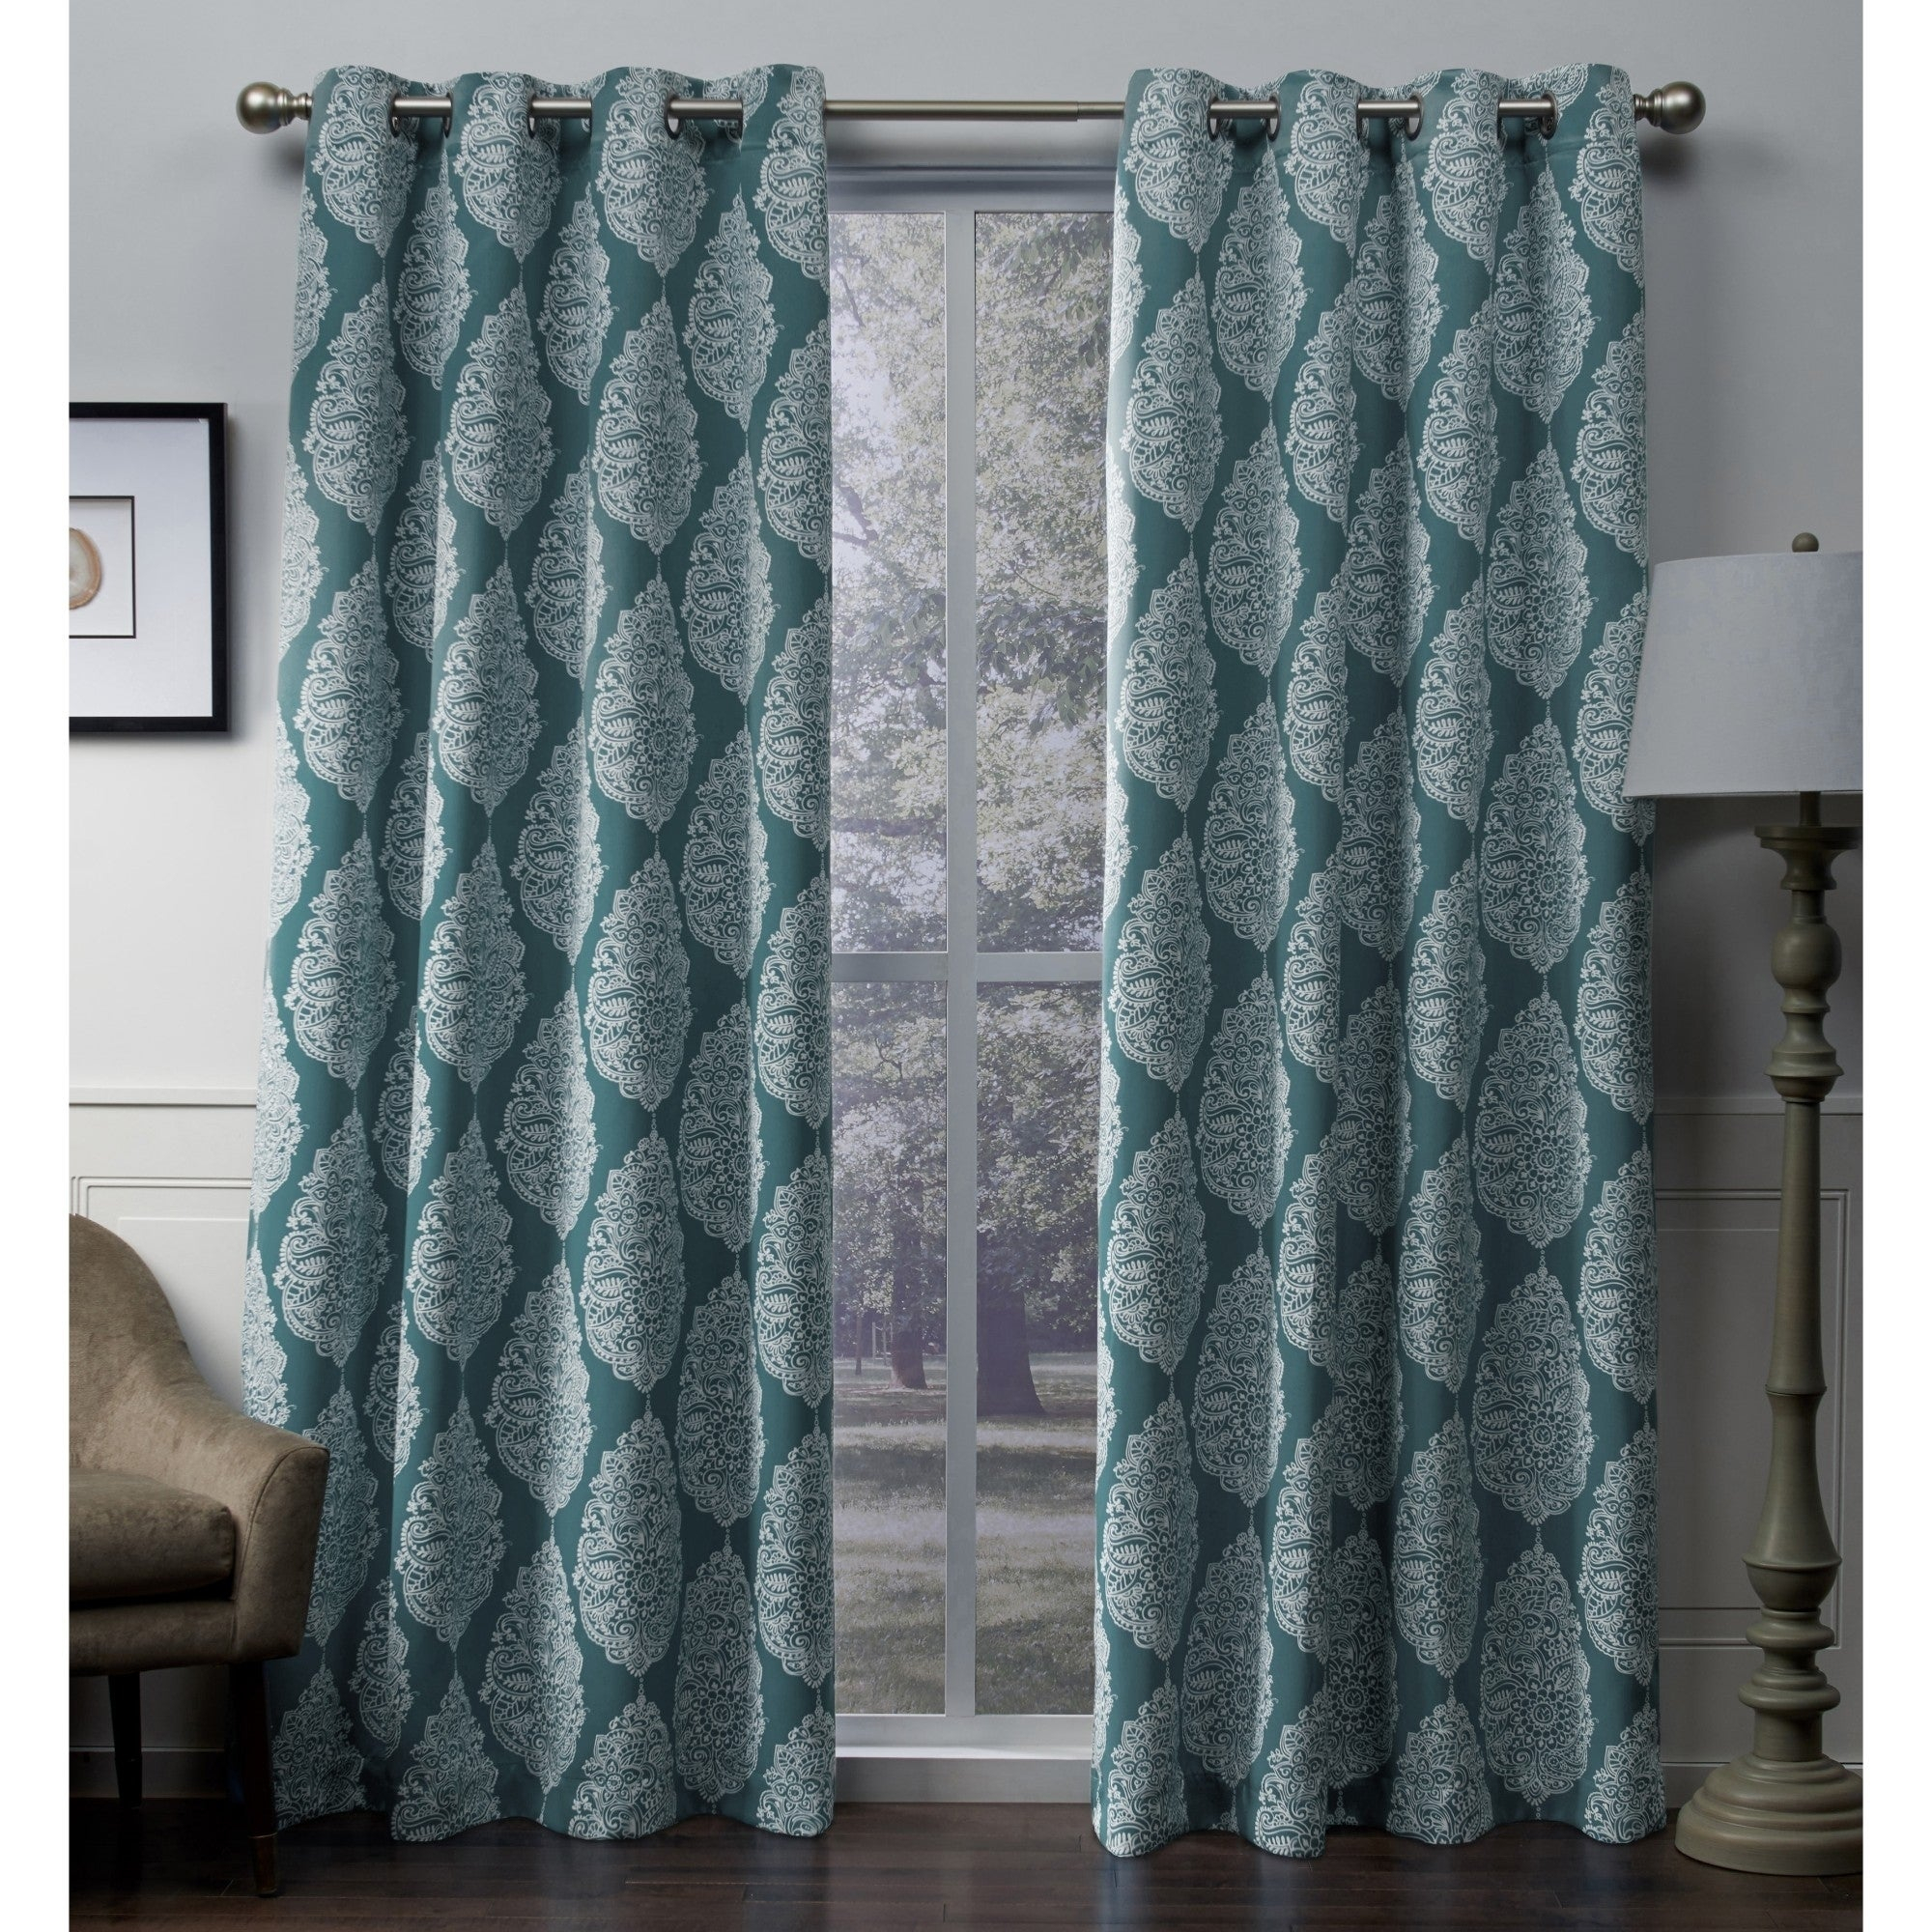 Details About Ati Home Queensland Sateen Blackout Grommet Top Curtain Intended For Oxford Sateen Woven Blackout Grommet Top Curtain Panel Pairs (View 10 of 20)